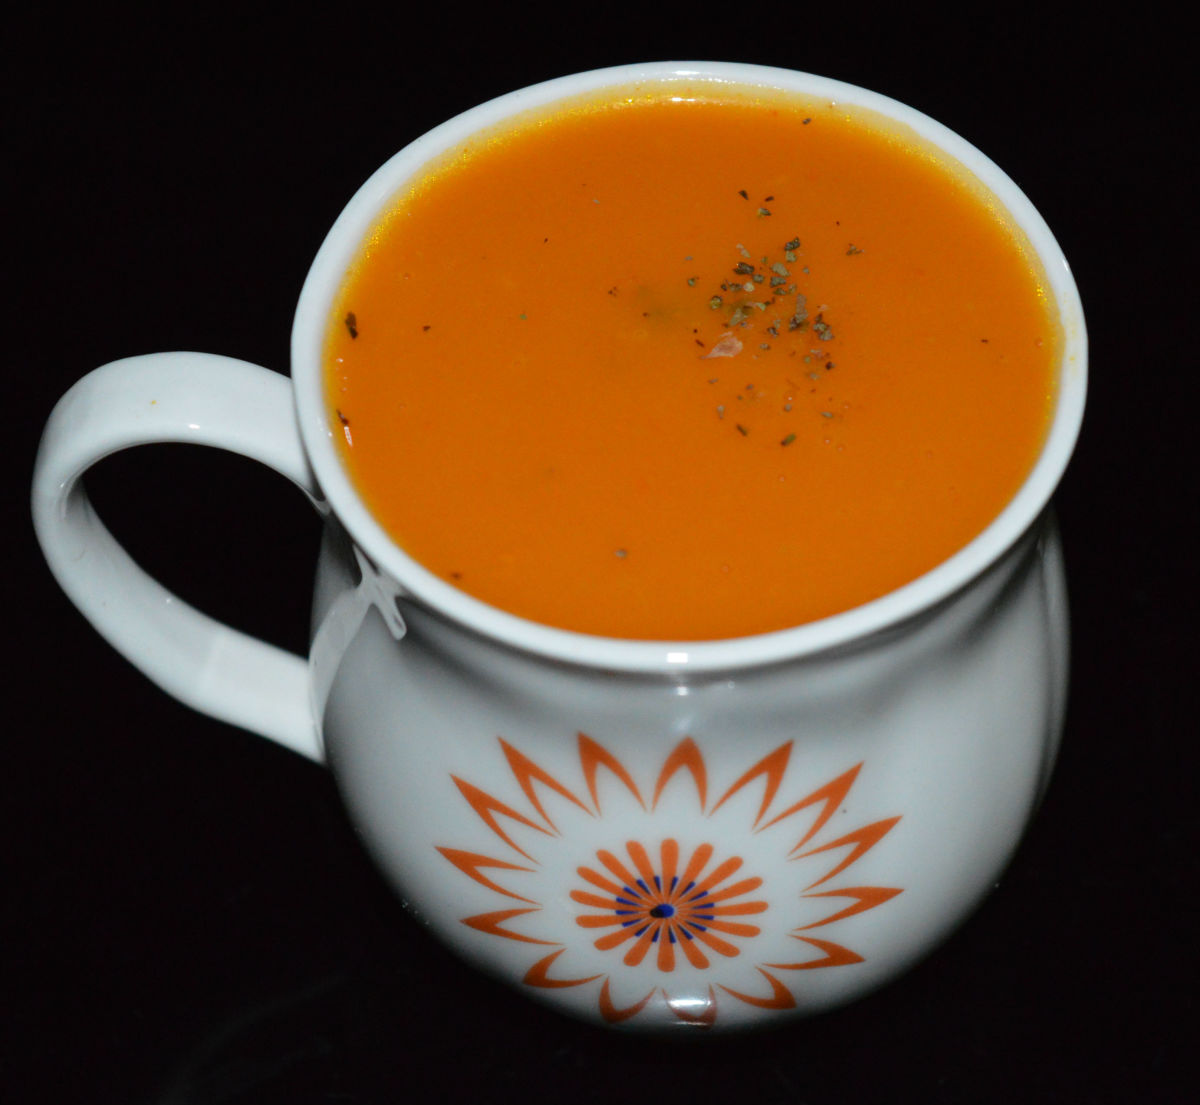 Carrot Onion Soup Recipe